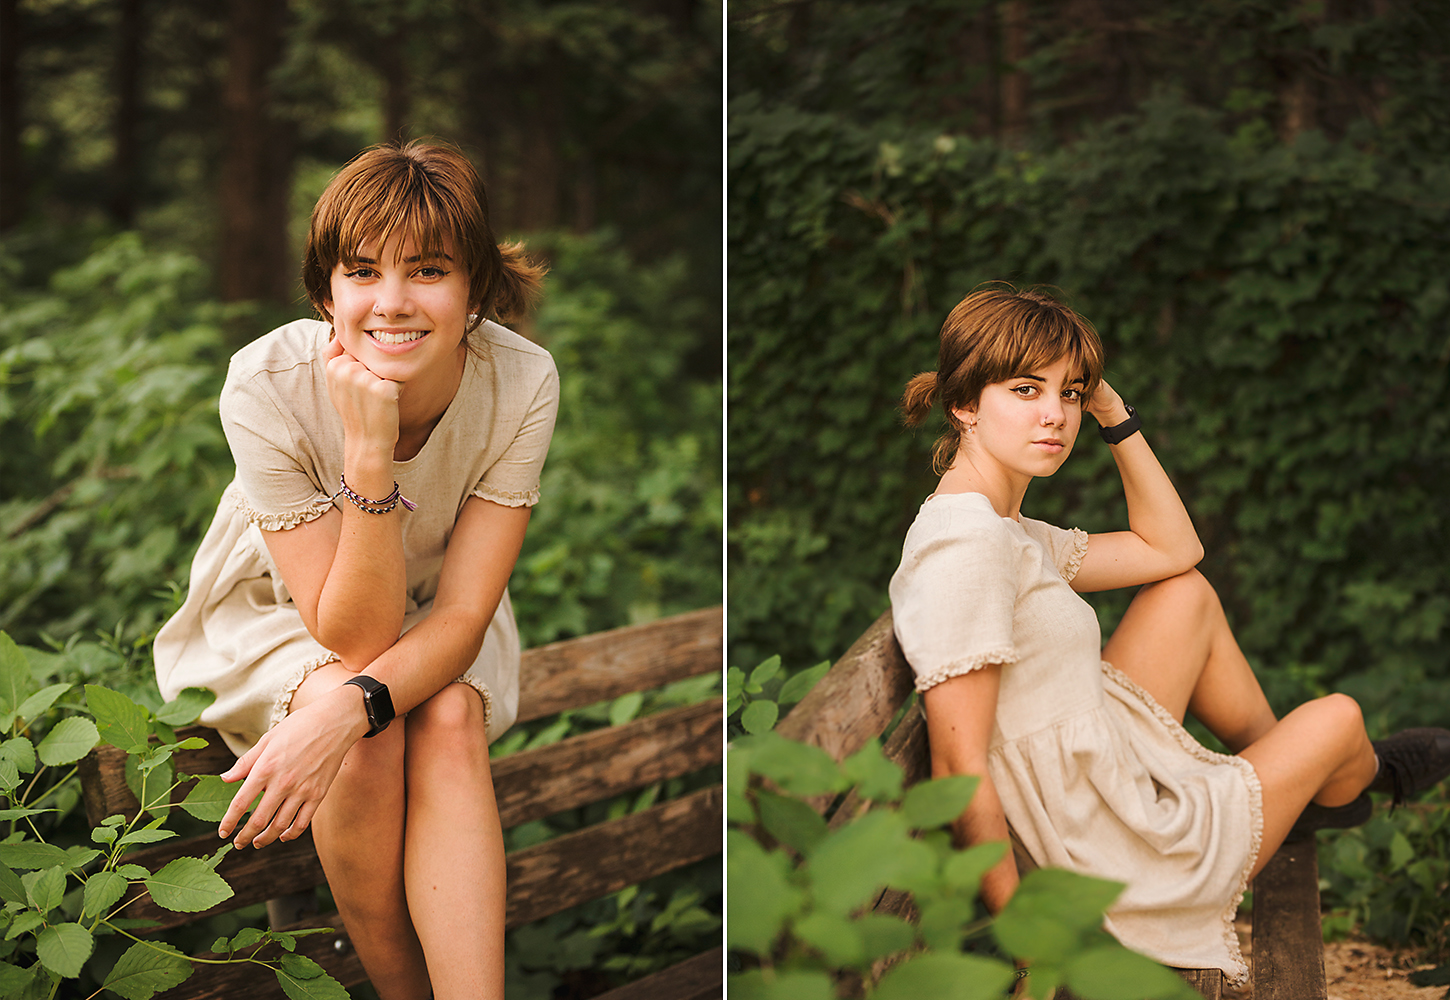 Abby_Senior_Pictures_Edina_2.jpg